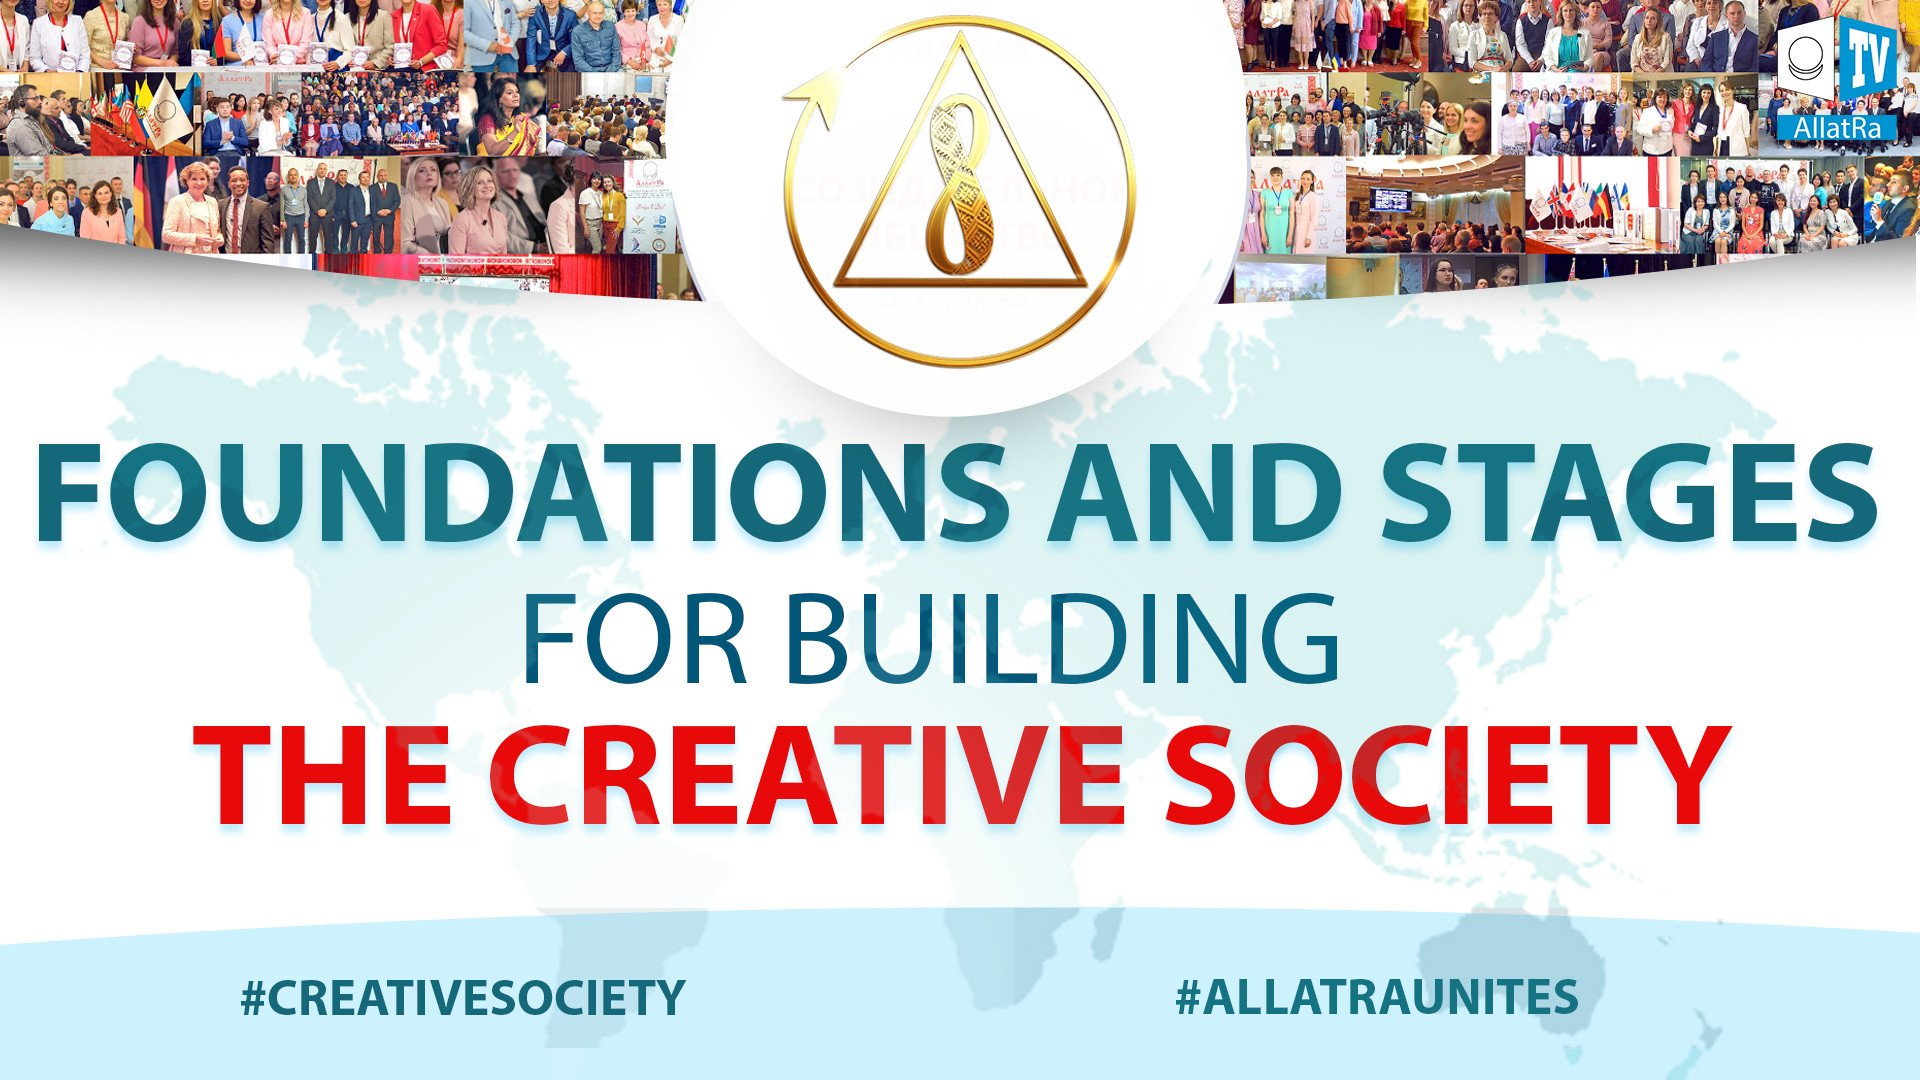 Global change. Building the best future for humanity. Creative Society